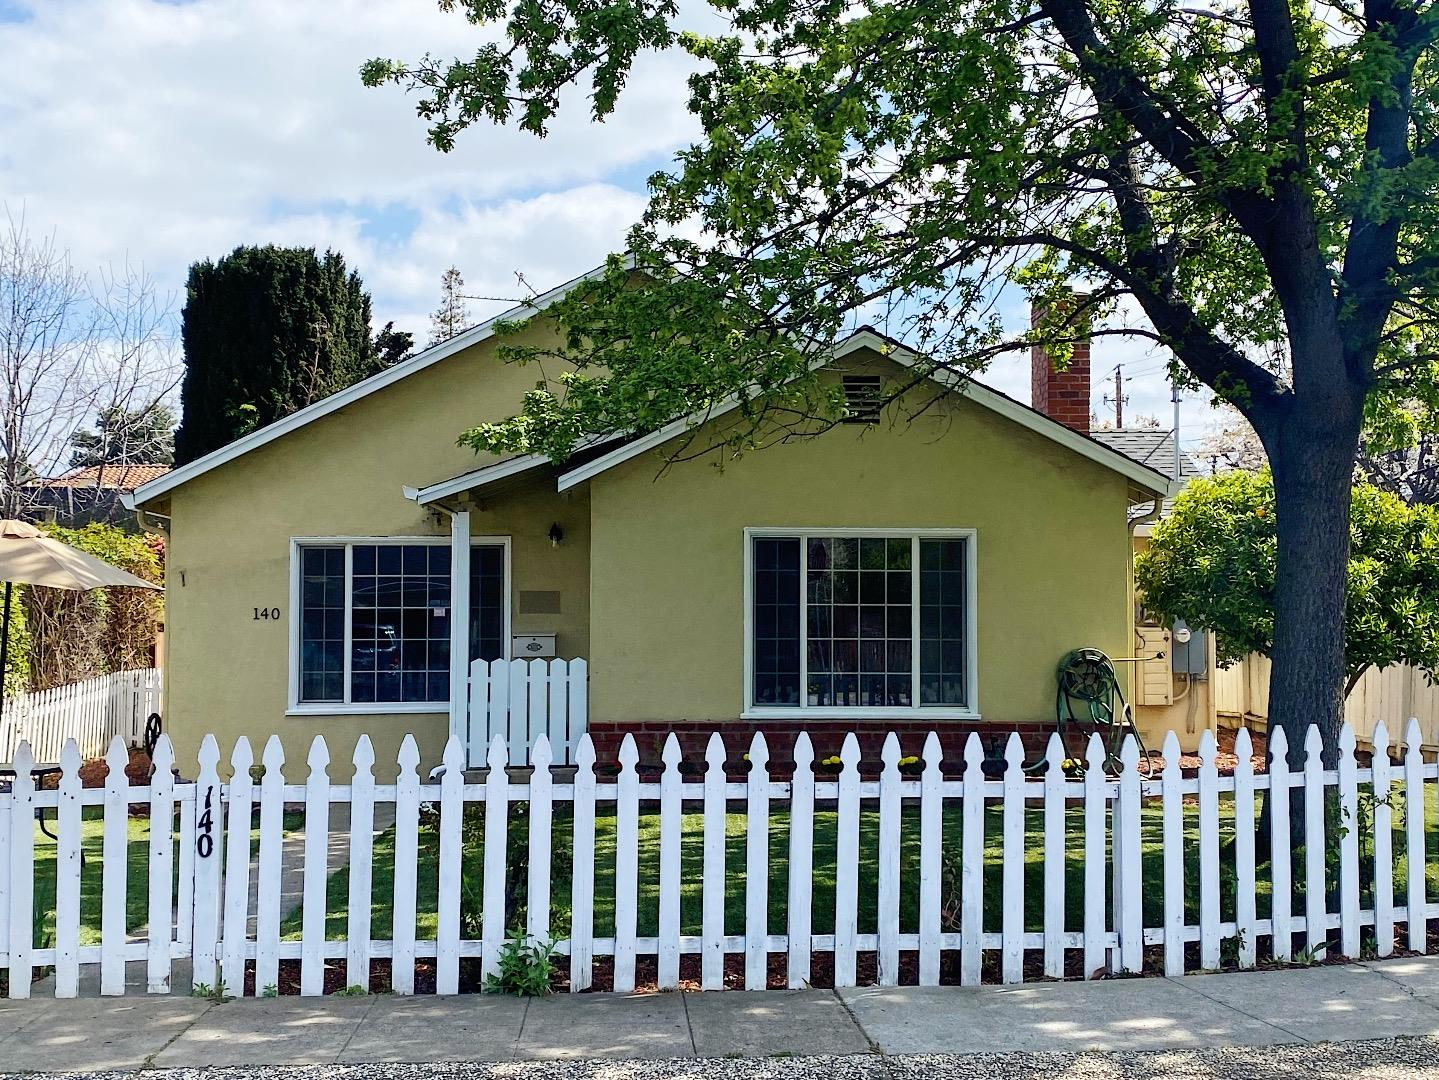 Charming cottage style home in a highly desirable Campbell neighborhood. Conveniently located minutes to Historic downtown Campbell,  Pruneyard shopping Center, restaurants & theaters. Walking distance to Campbell community center and John D Morgan park. Hike Los Gatos Creek Trail and enjoy weekly Farmers Markets.  Easy access to  880, San Tomas Expway. This home has so much to offer, freshly painted, beautiful hardwood floors, solar, wood burning fire place, laundry room. Low maintenance landscape with artificial grass. Main house 3/2 , separate cottage 1/1, buyer to verify permits. Great Campbell Schools, Capri elementary, Rolling Hills Middle  & Westmont High. Too much to list! Must see to appreciate!